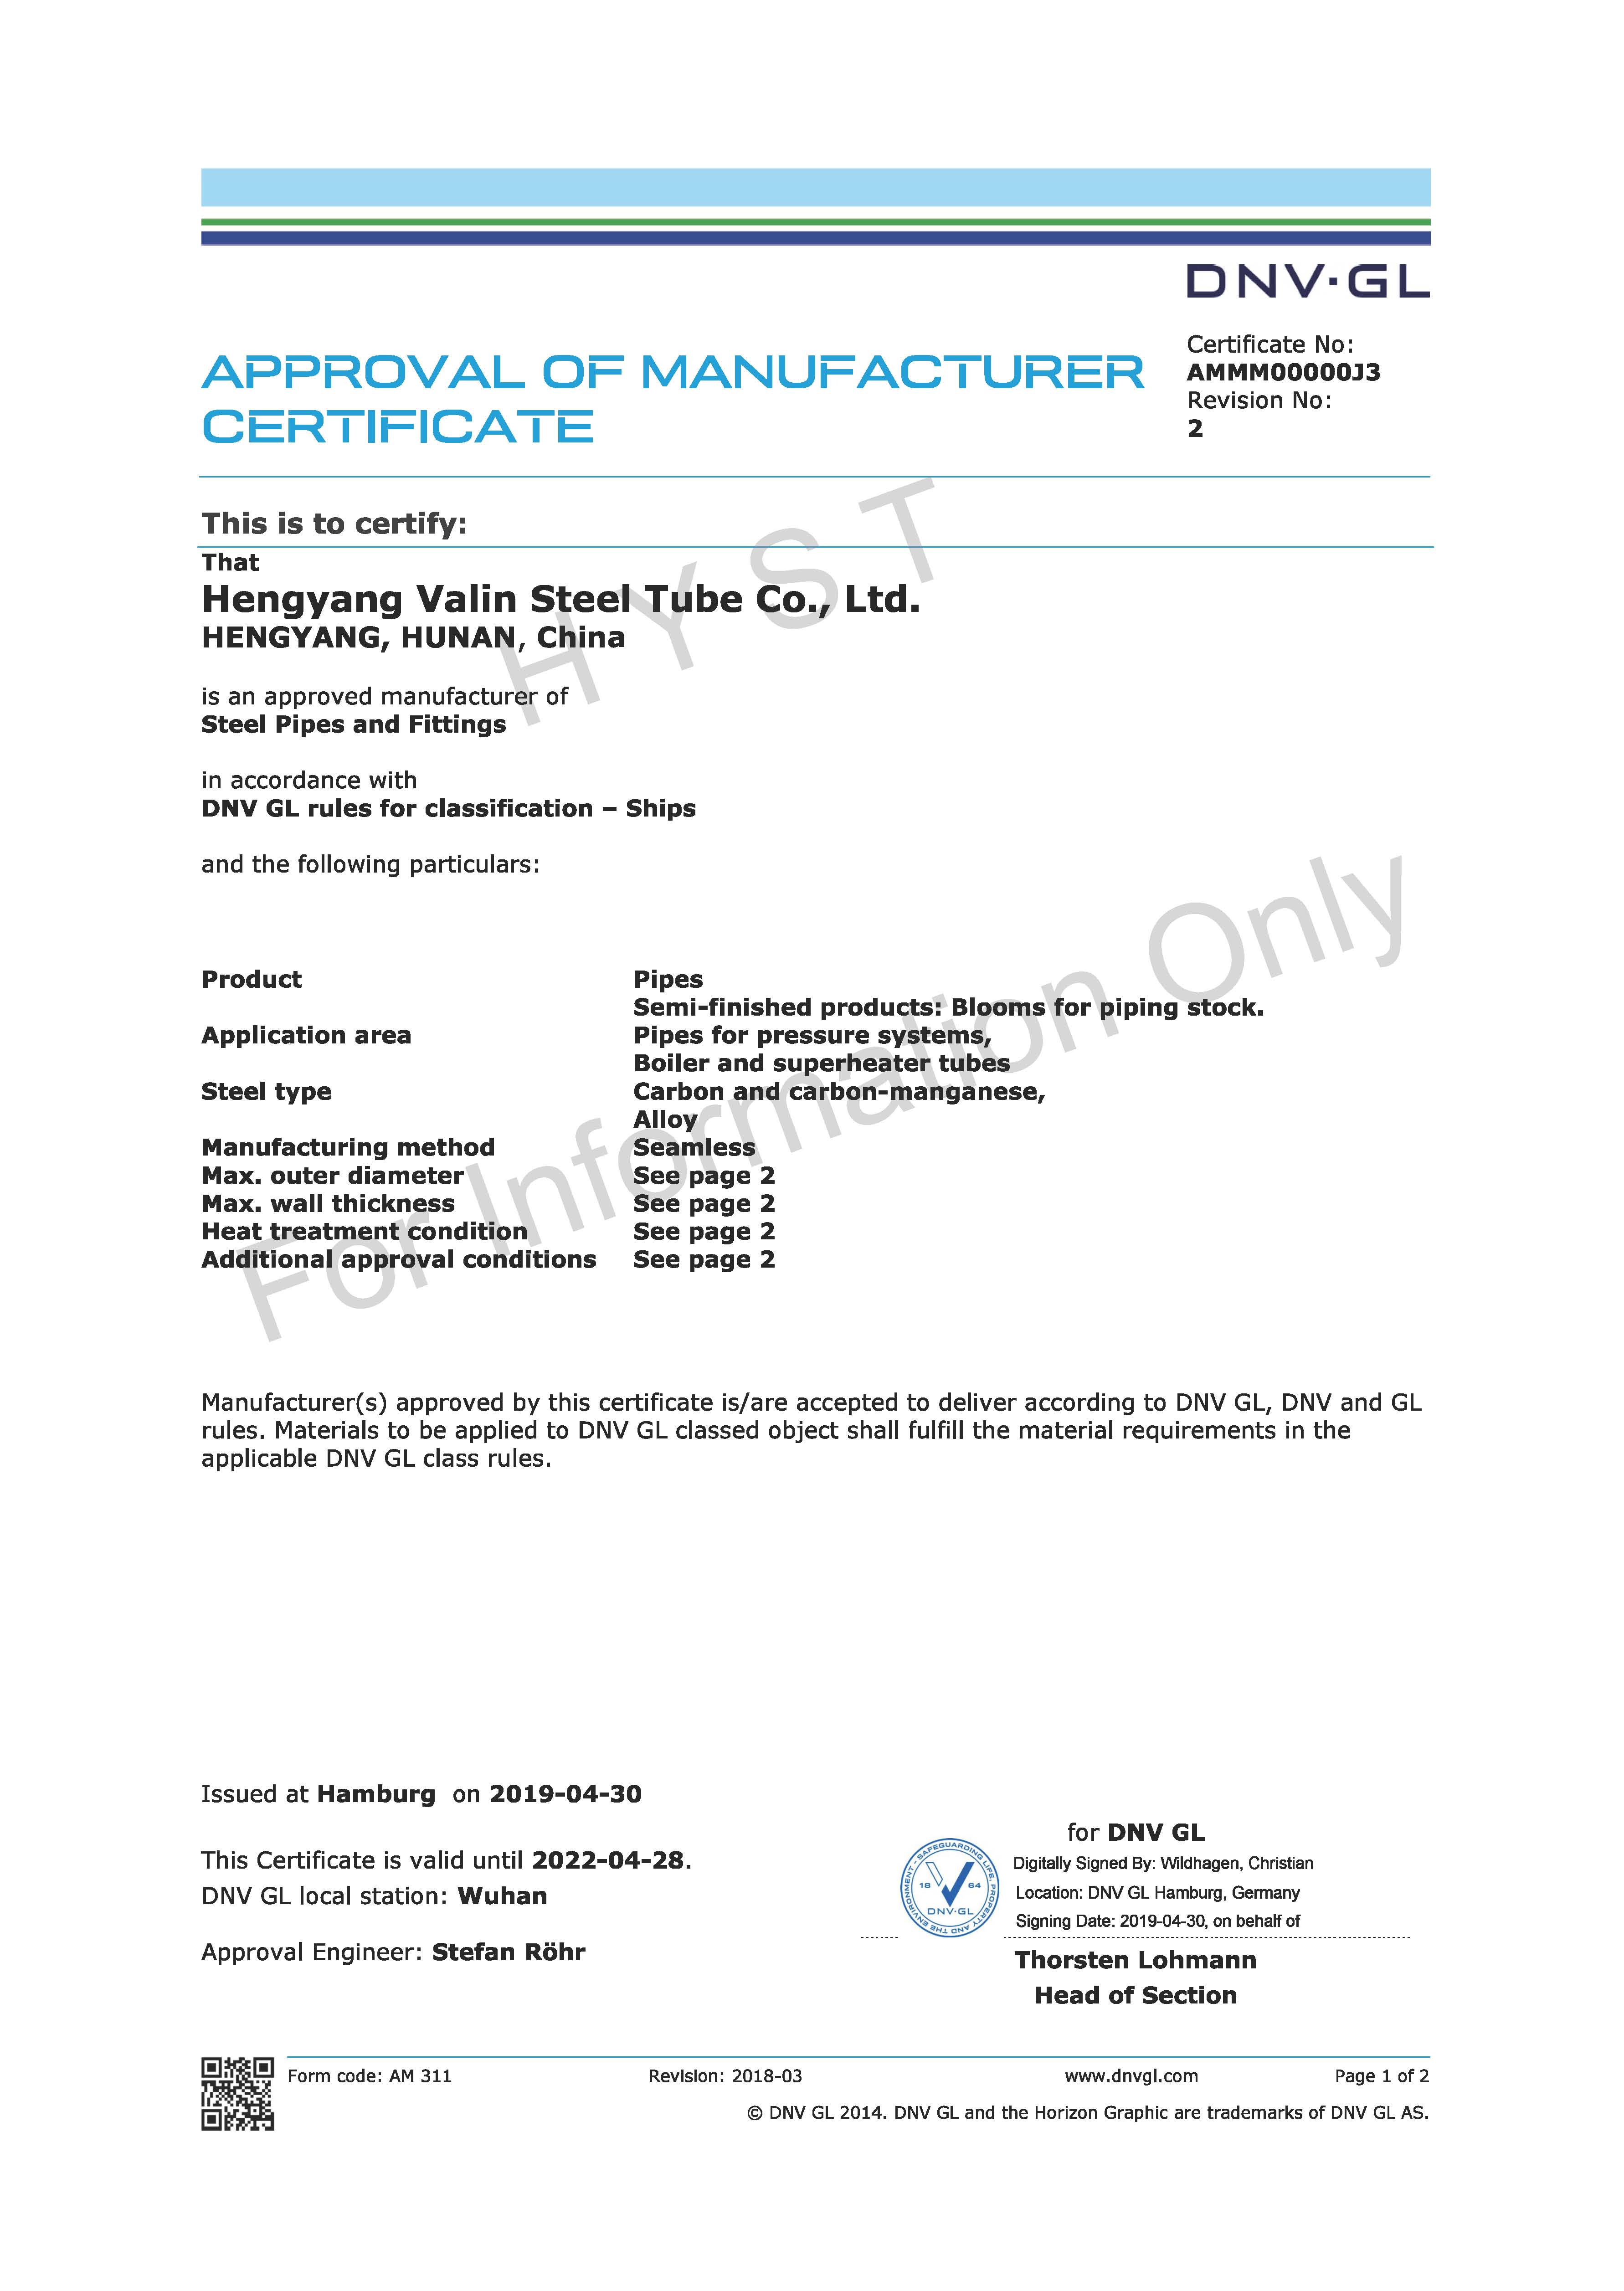 DNV . GL Certificate for Carbon-Manganese & Alloy Steel Pipes